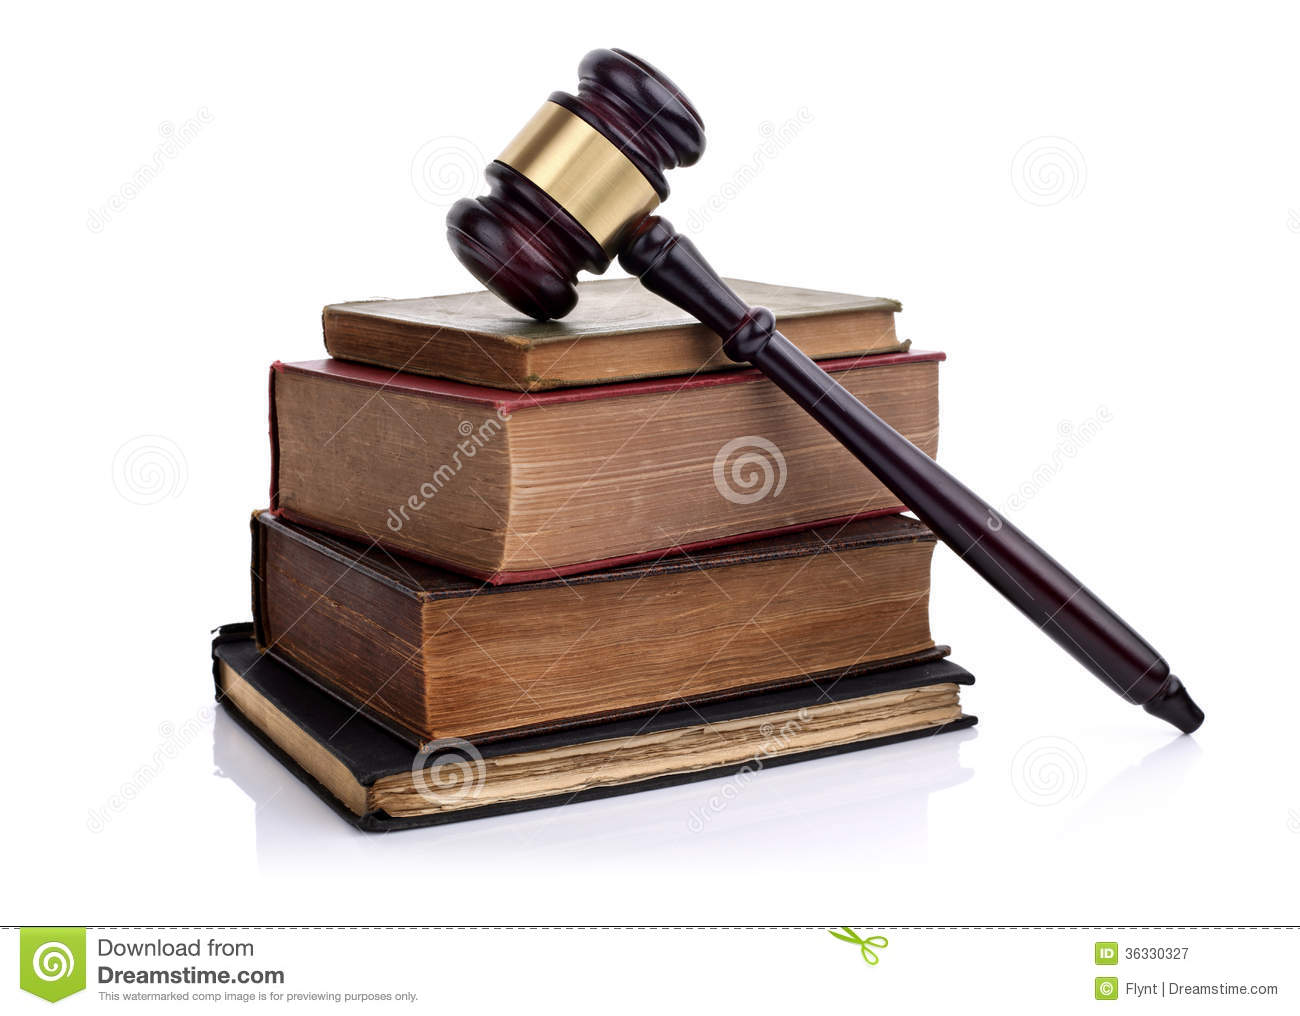 law book clipart - photo #39